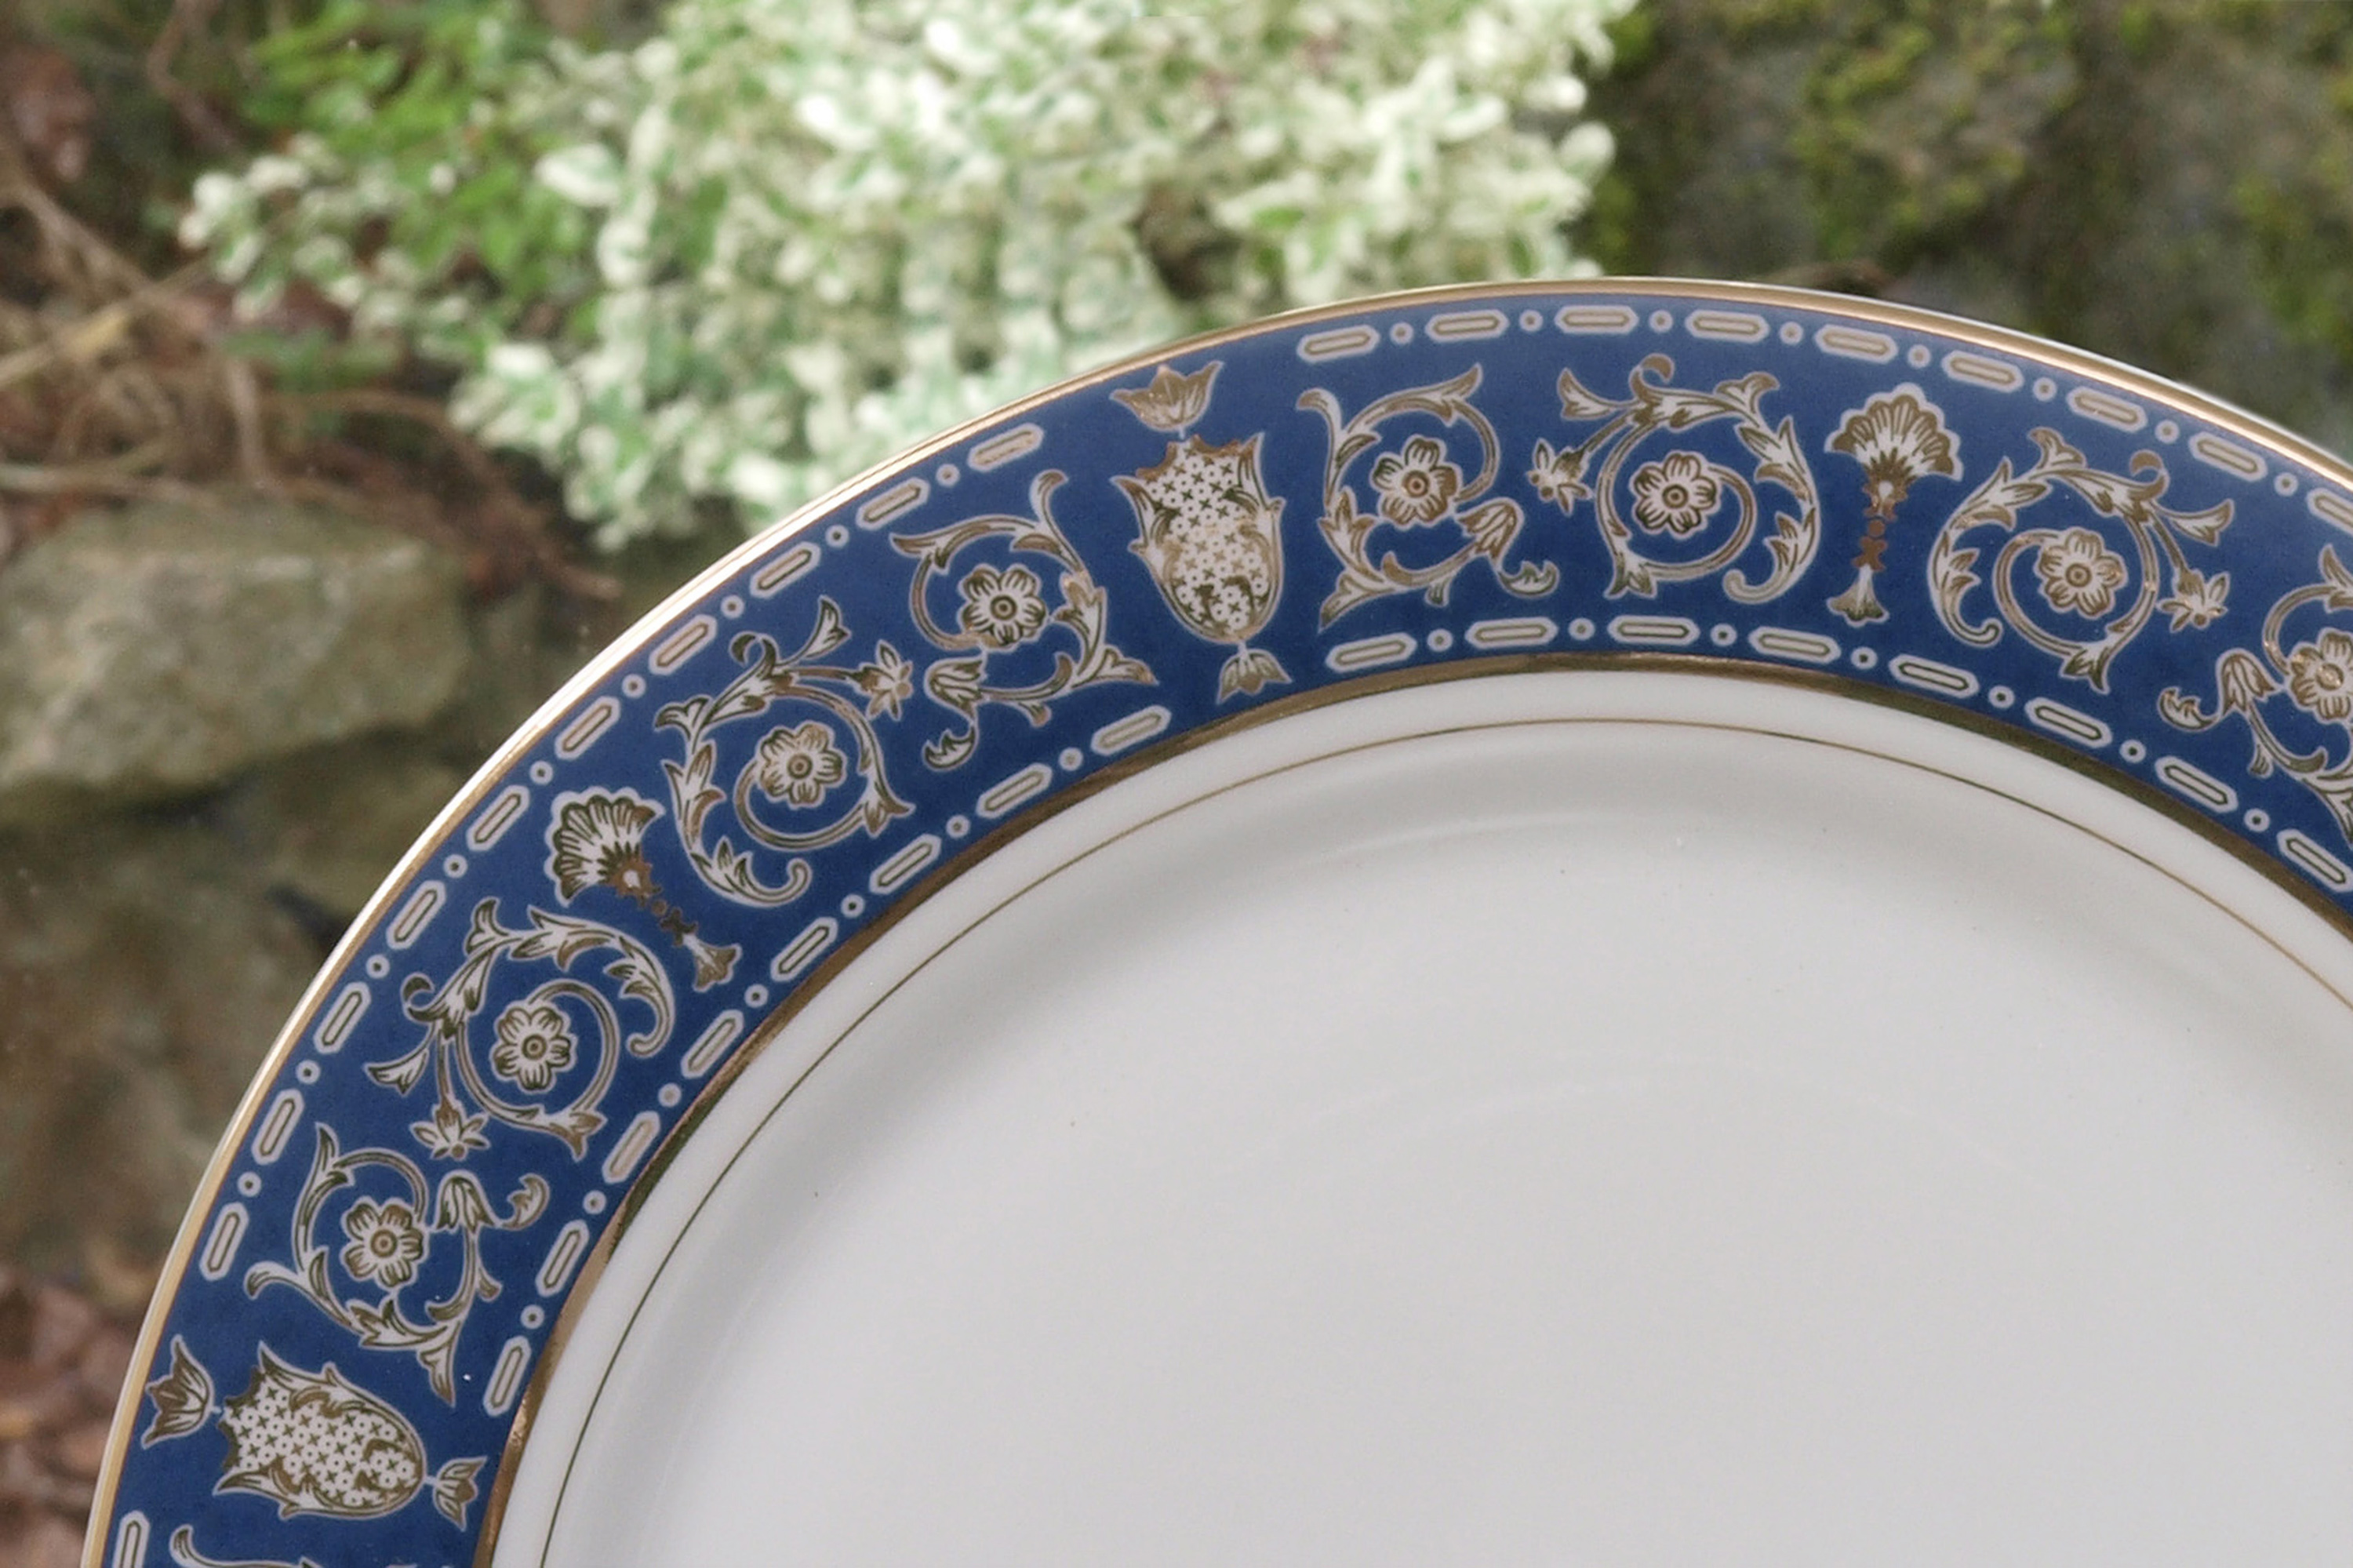 THE ROYAL BLUE 56 PIECE DINNER SERVICE